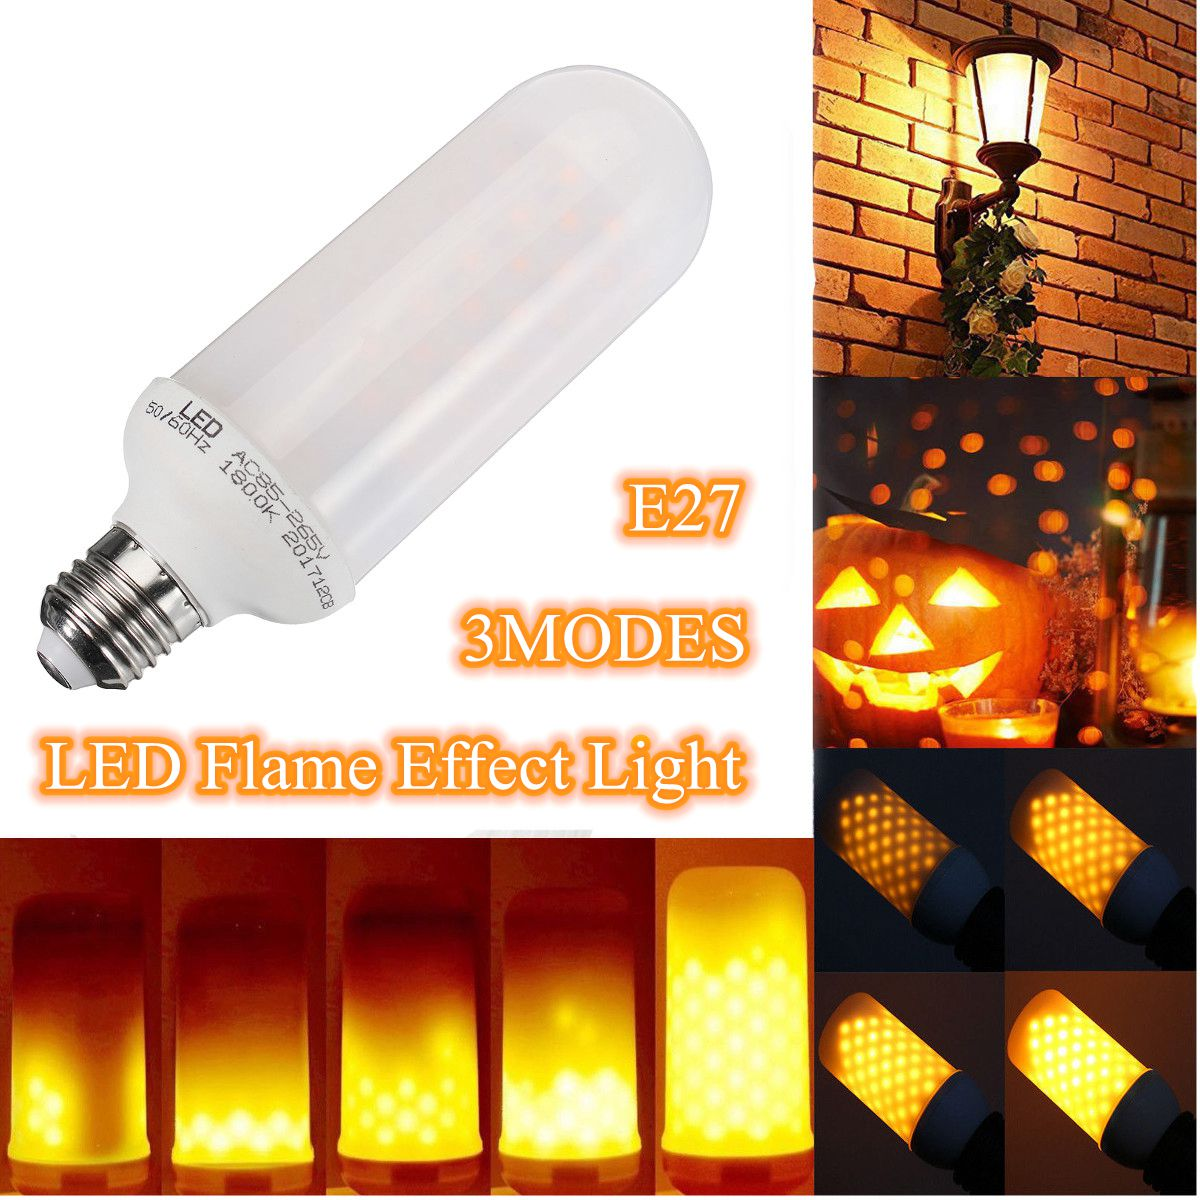 E27 9W LED Lamp Flame Burning Light Flicker Flame Lamp Bulb Fir e Effect Decorative Lamp NEW